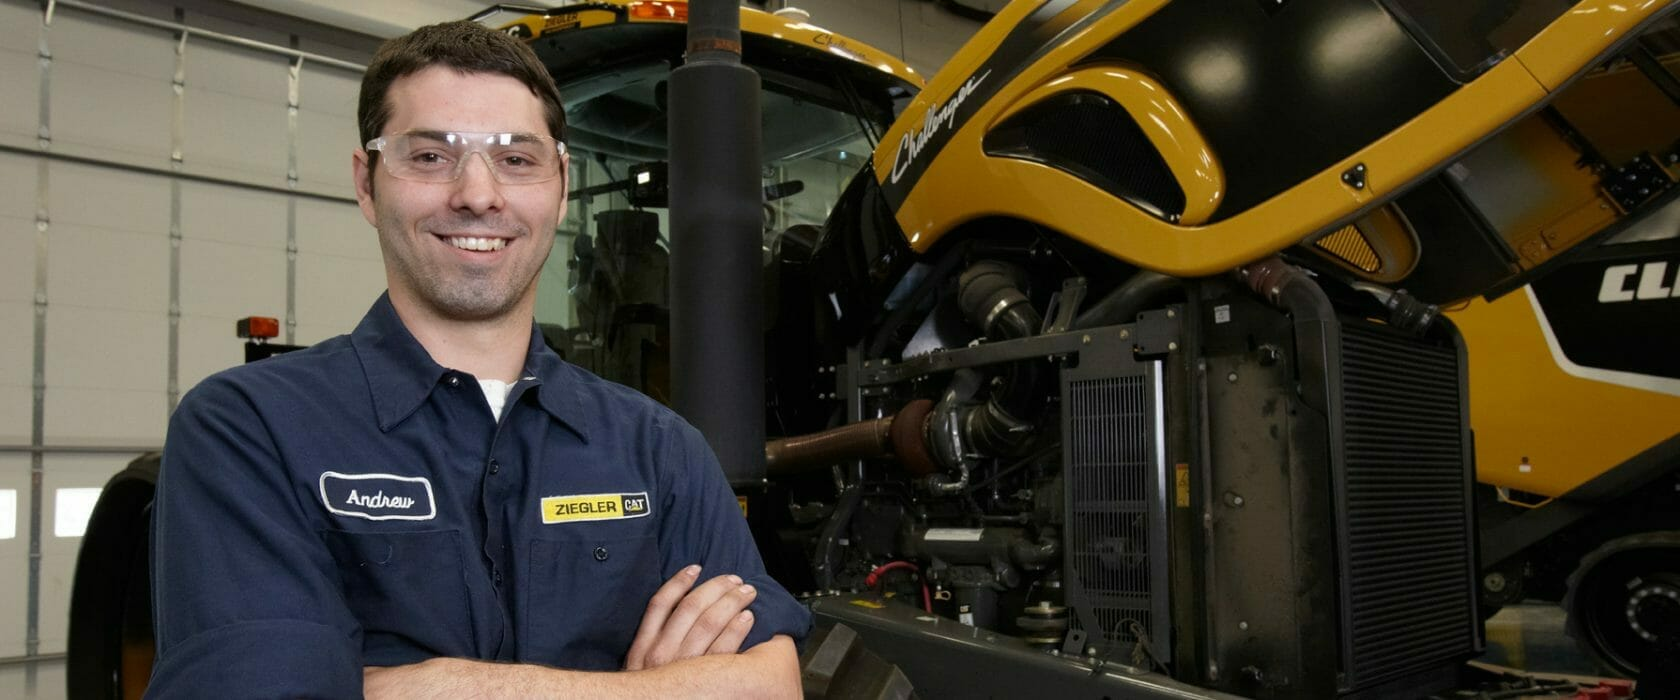 Employee standing next to used equipment